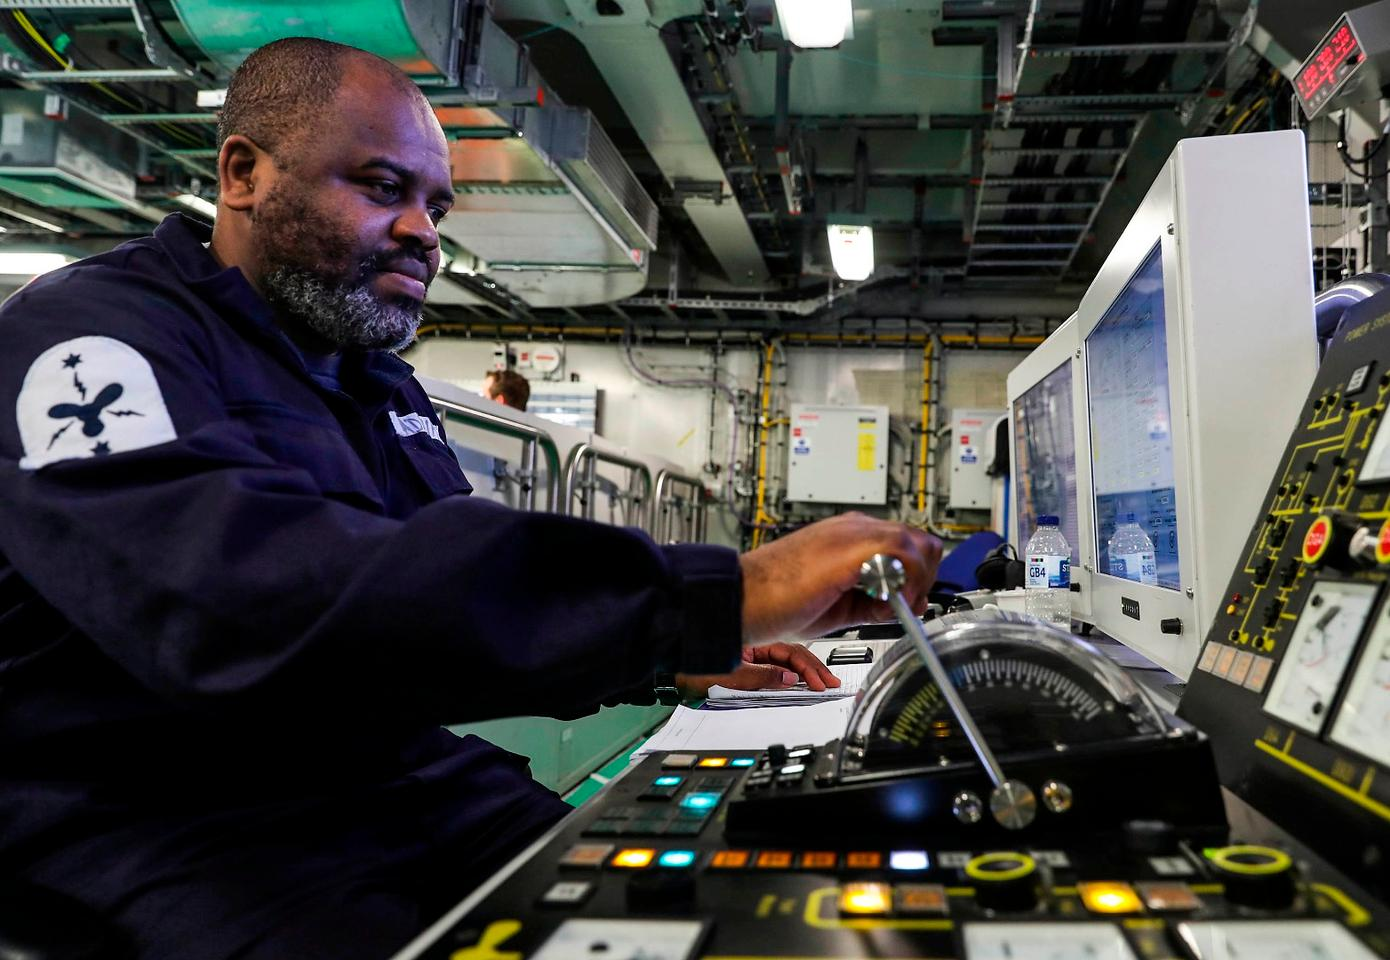 One of the control panels on HMS Queen Elizabeth